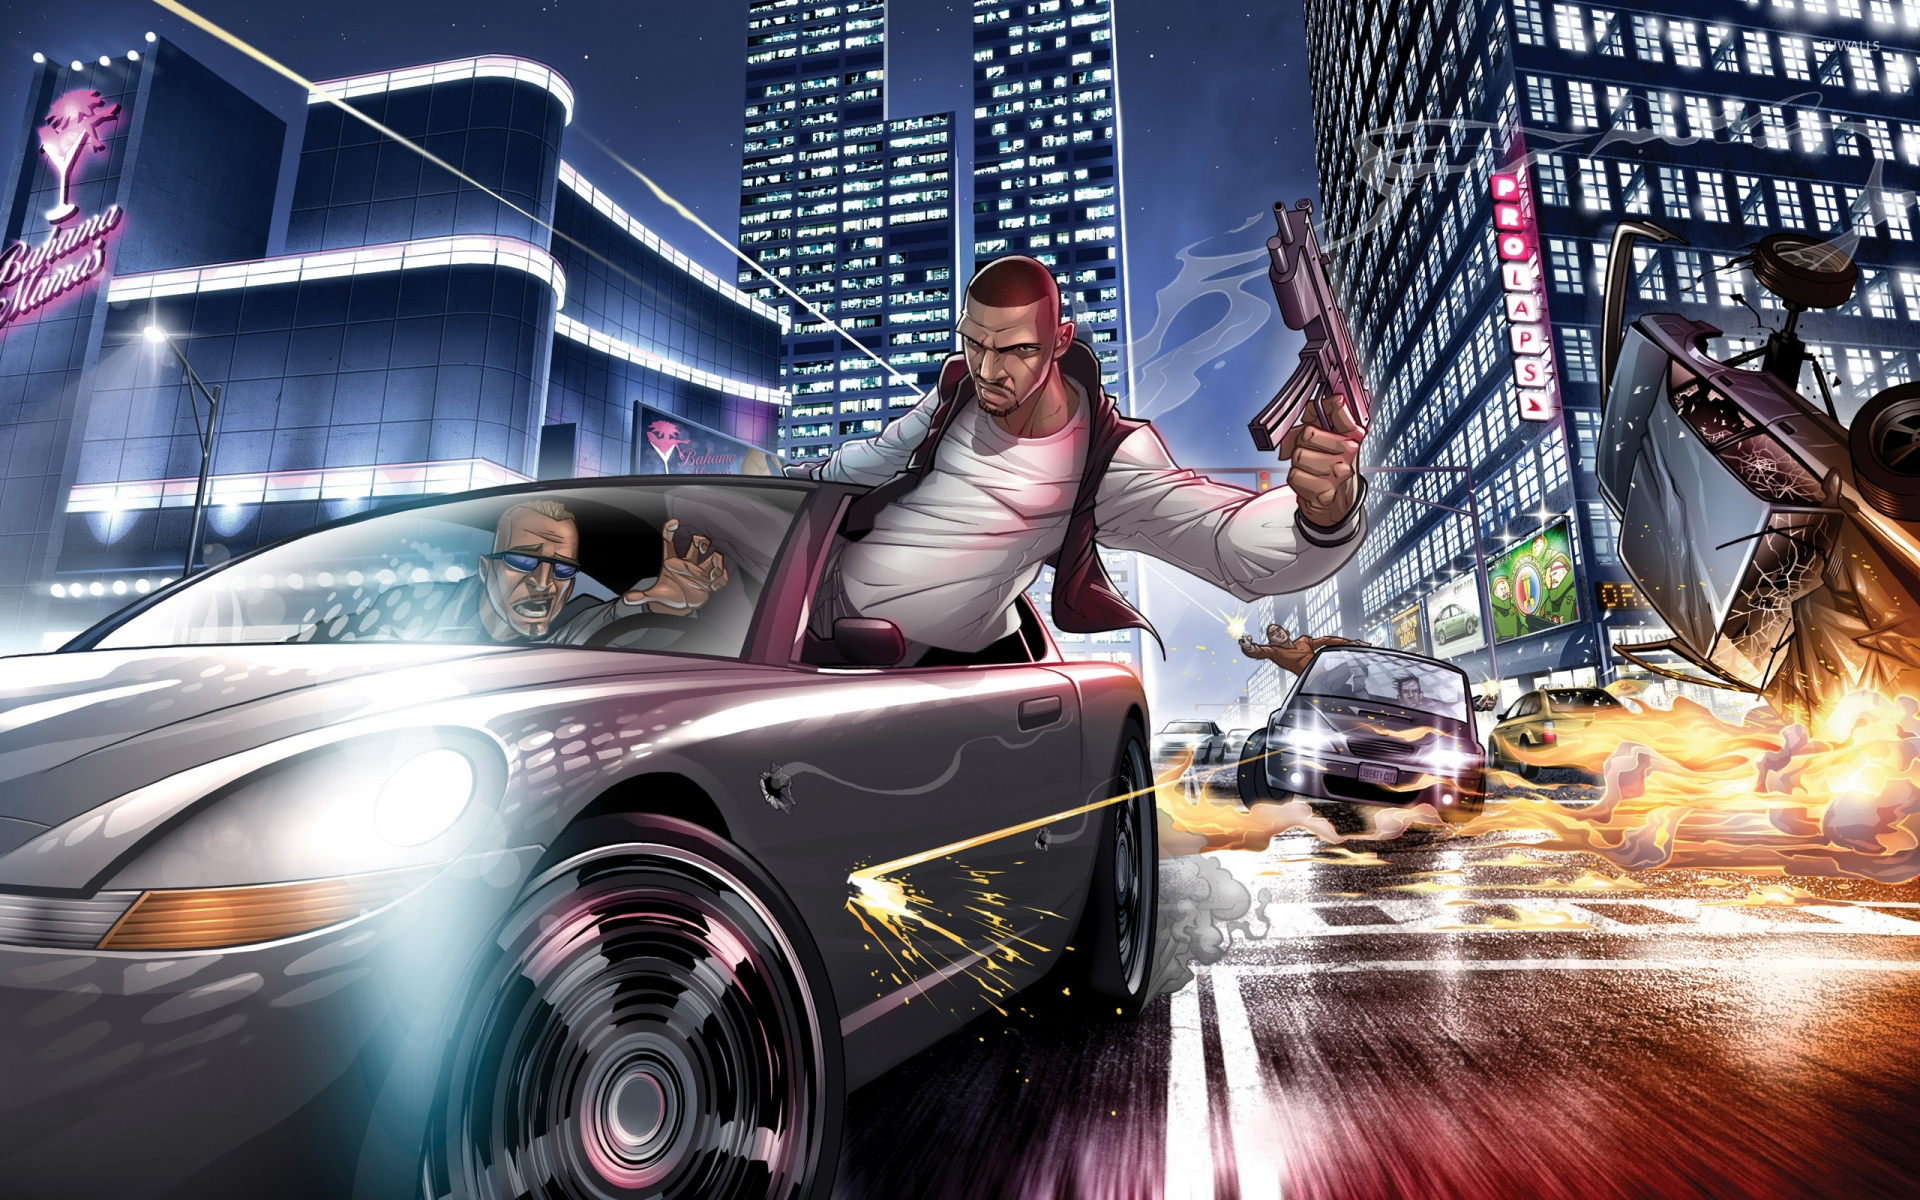 Felons Of Grand Theft Auto Iii Wallpaper Game Wallpapers 51505